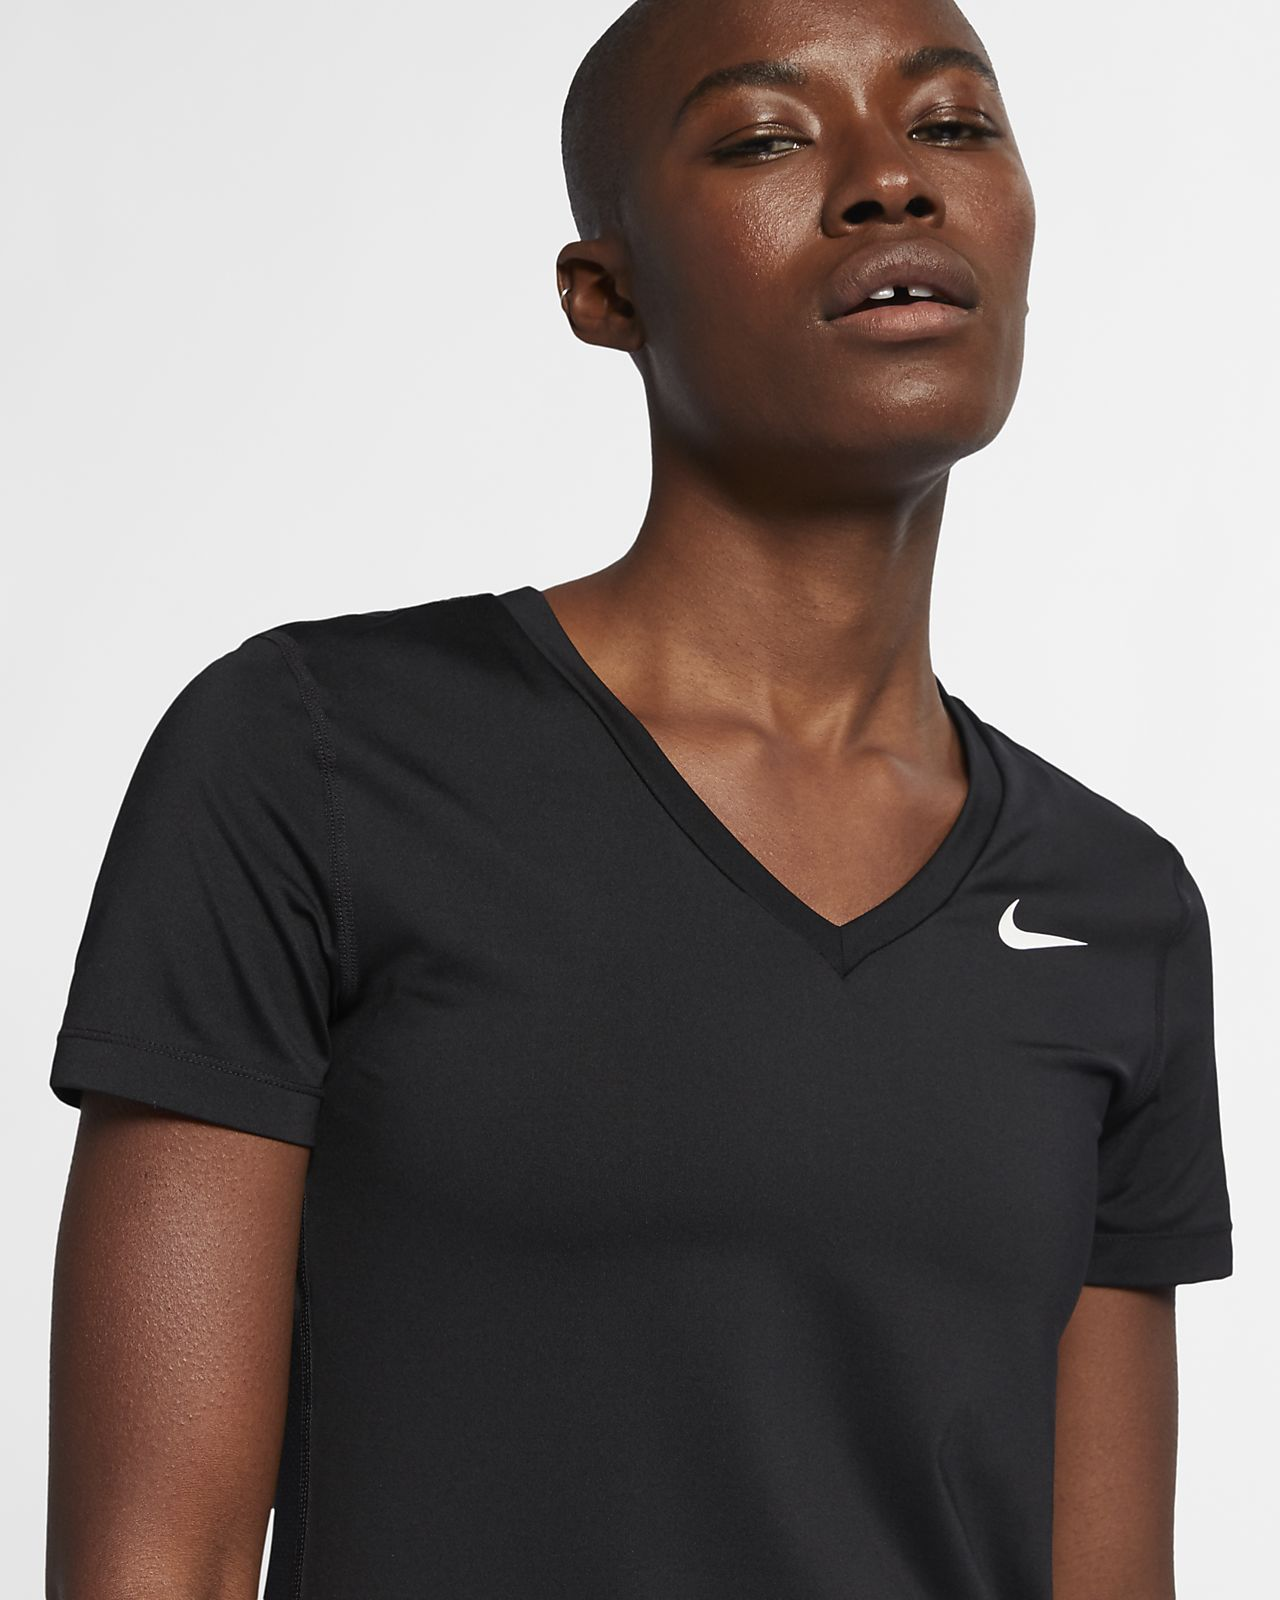 38ee588293 Nike Dri-FIT Victory Women's Short-Sleeve Training Top